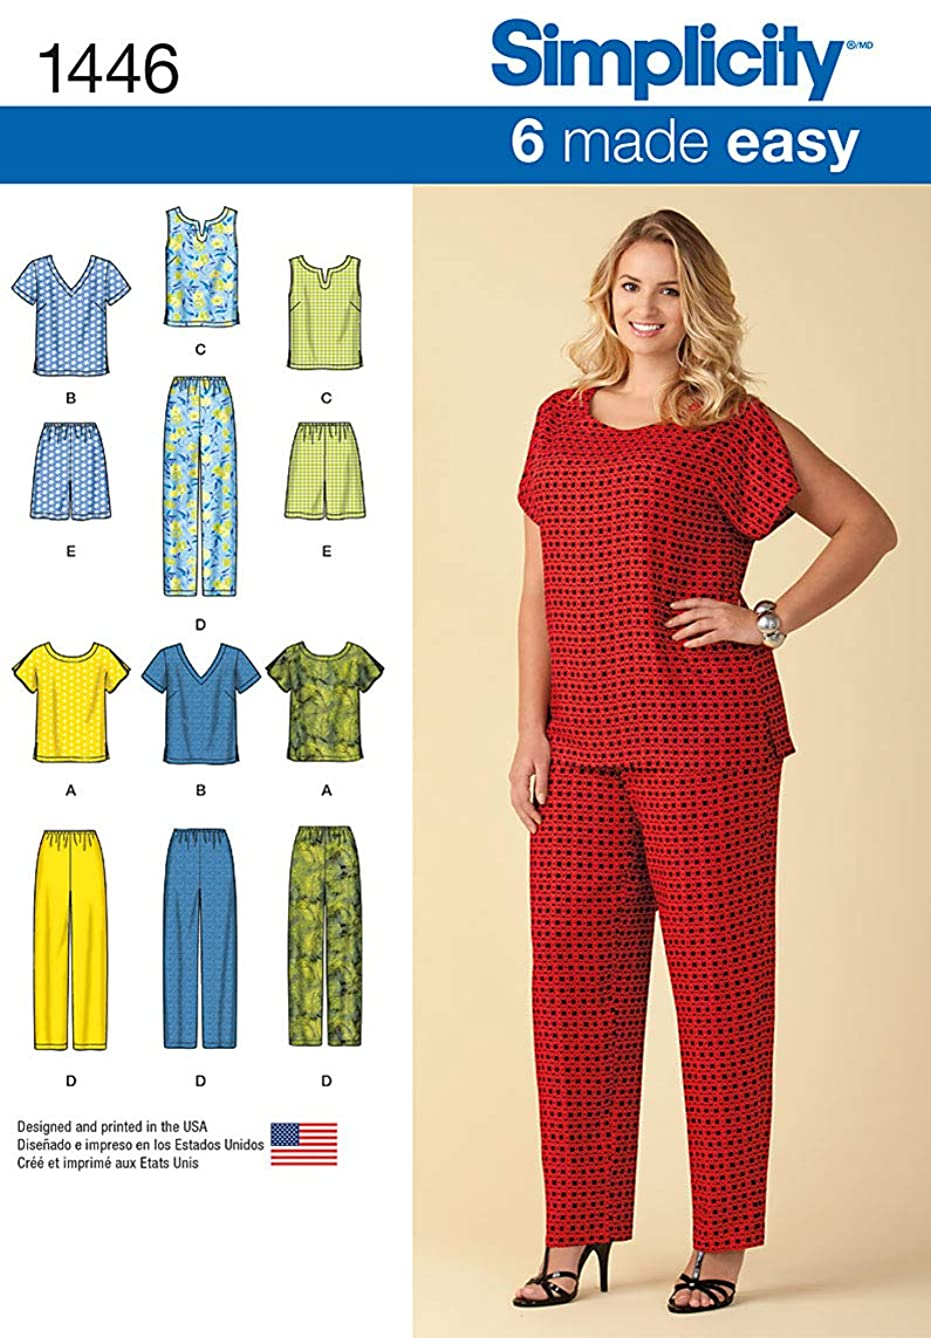 Simplicity 1446 Easy to Sew Women's Shirt, Pants, and Shorts Sewing Patterns, Sizes 18W-24W